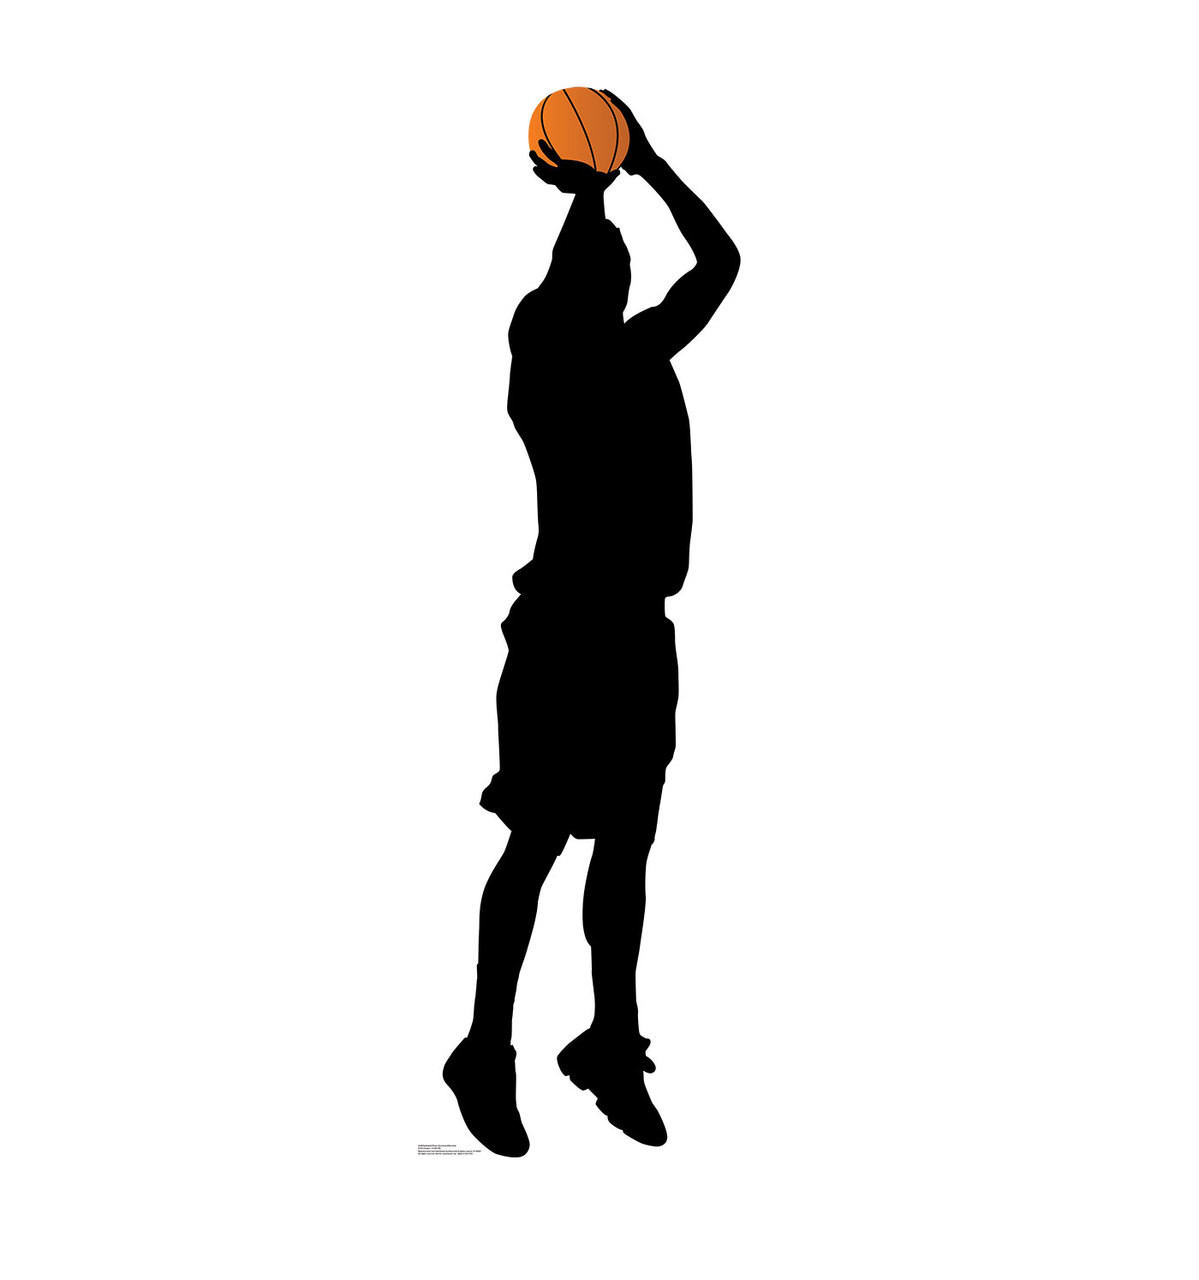 life size basketball player shooting silhouette cardboard standup 3